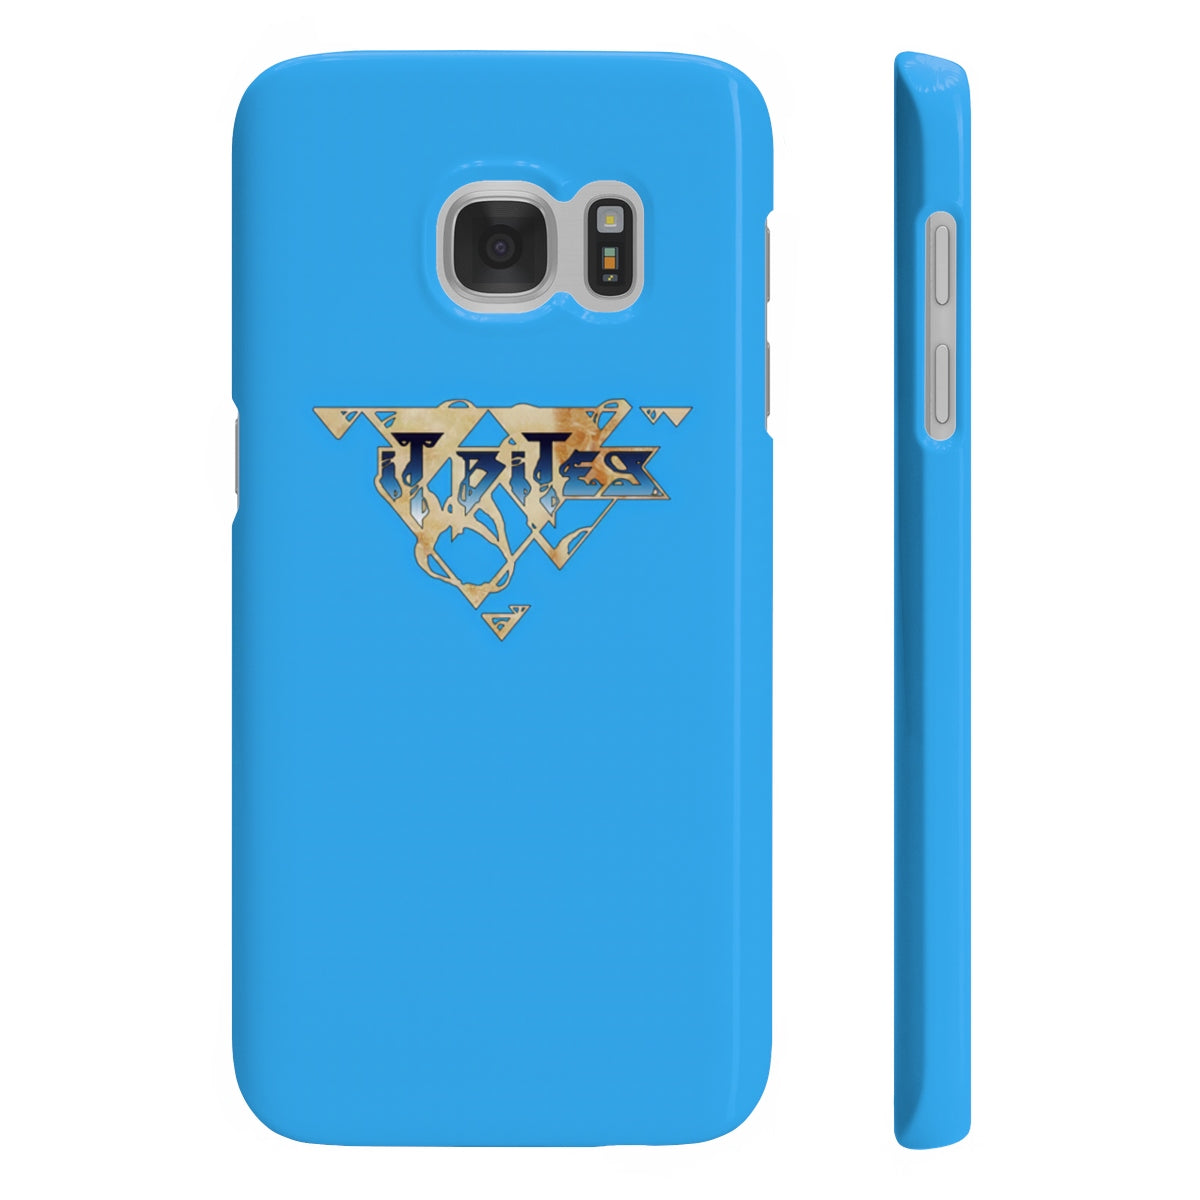 It Bites Phone Covers